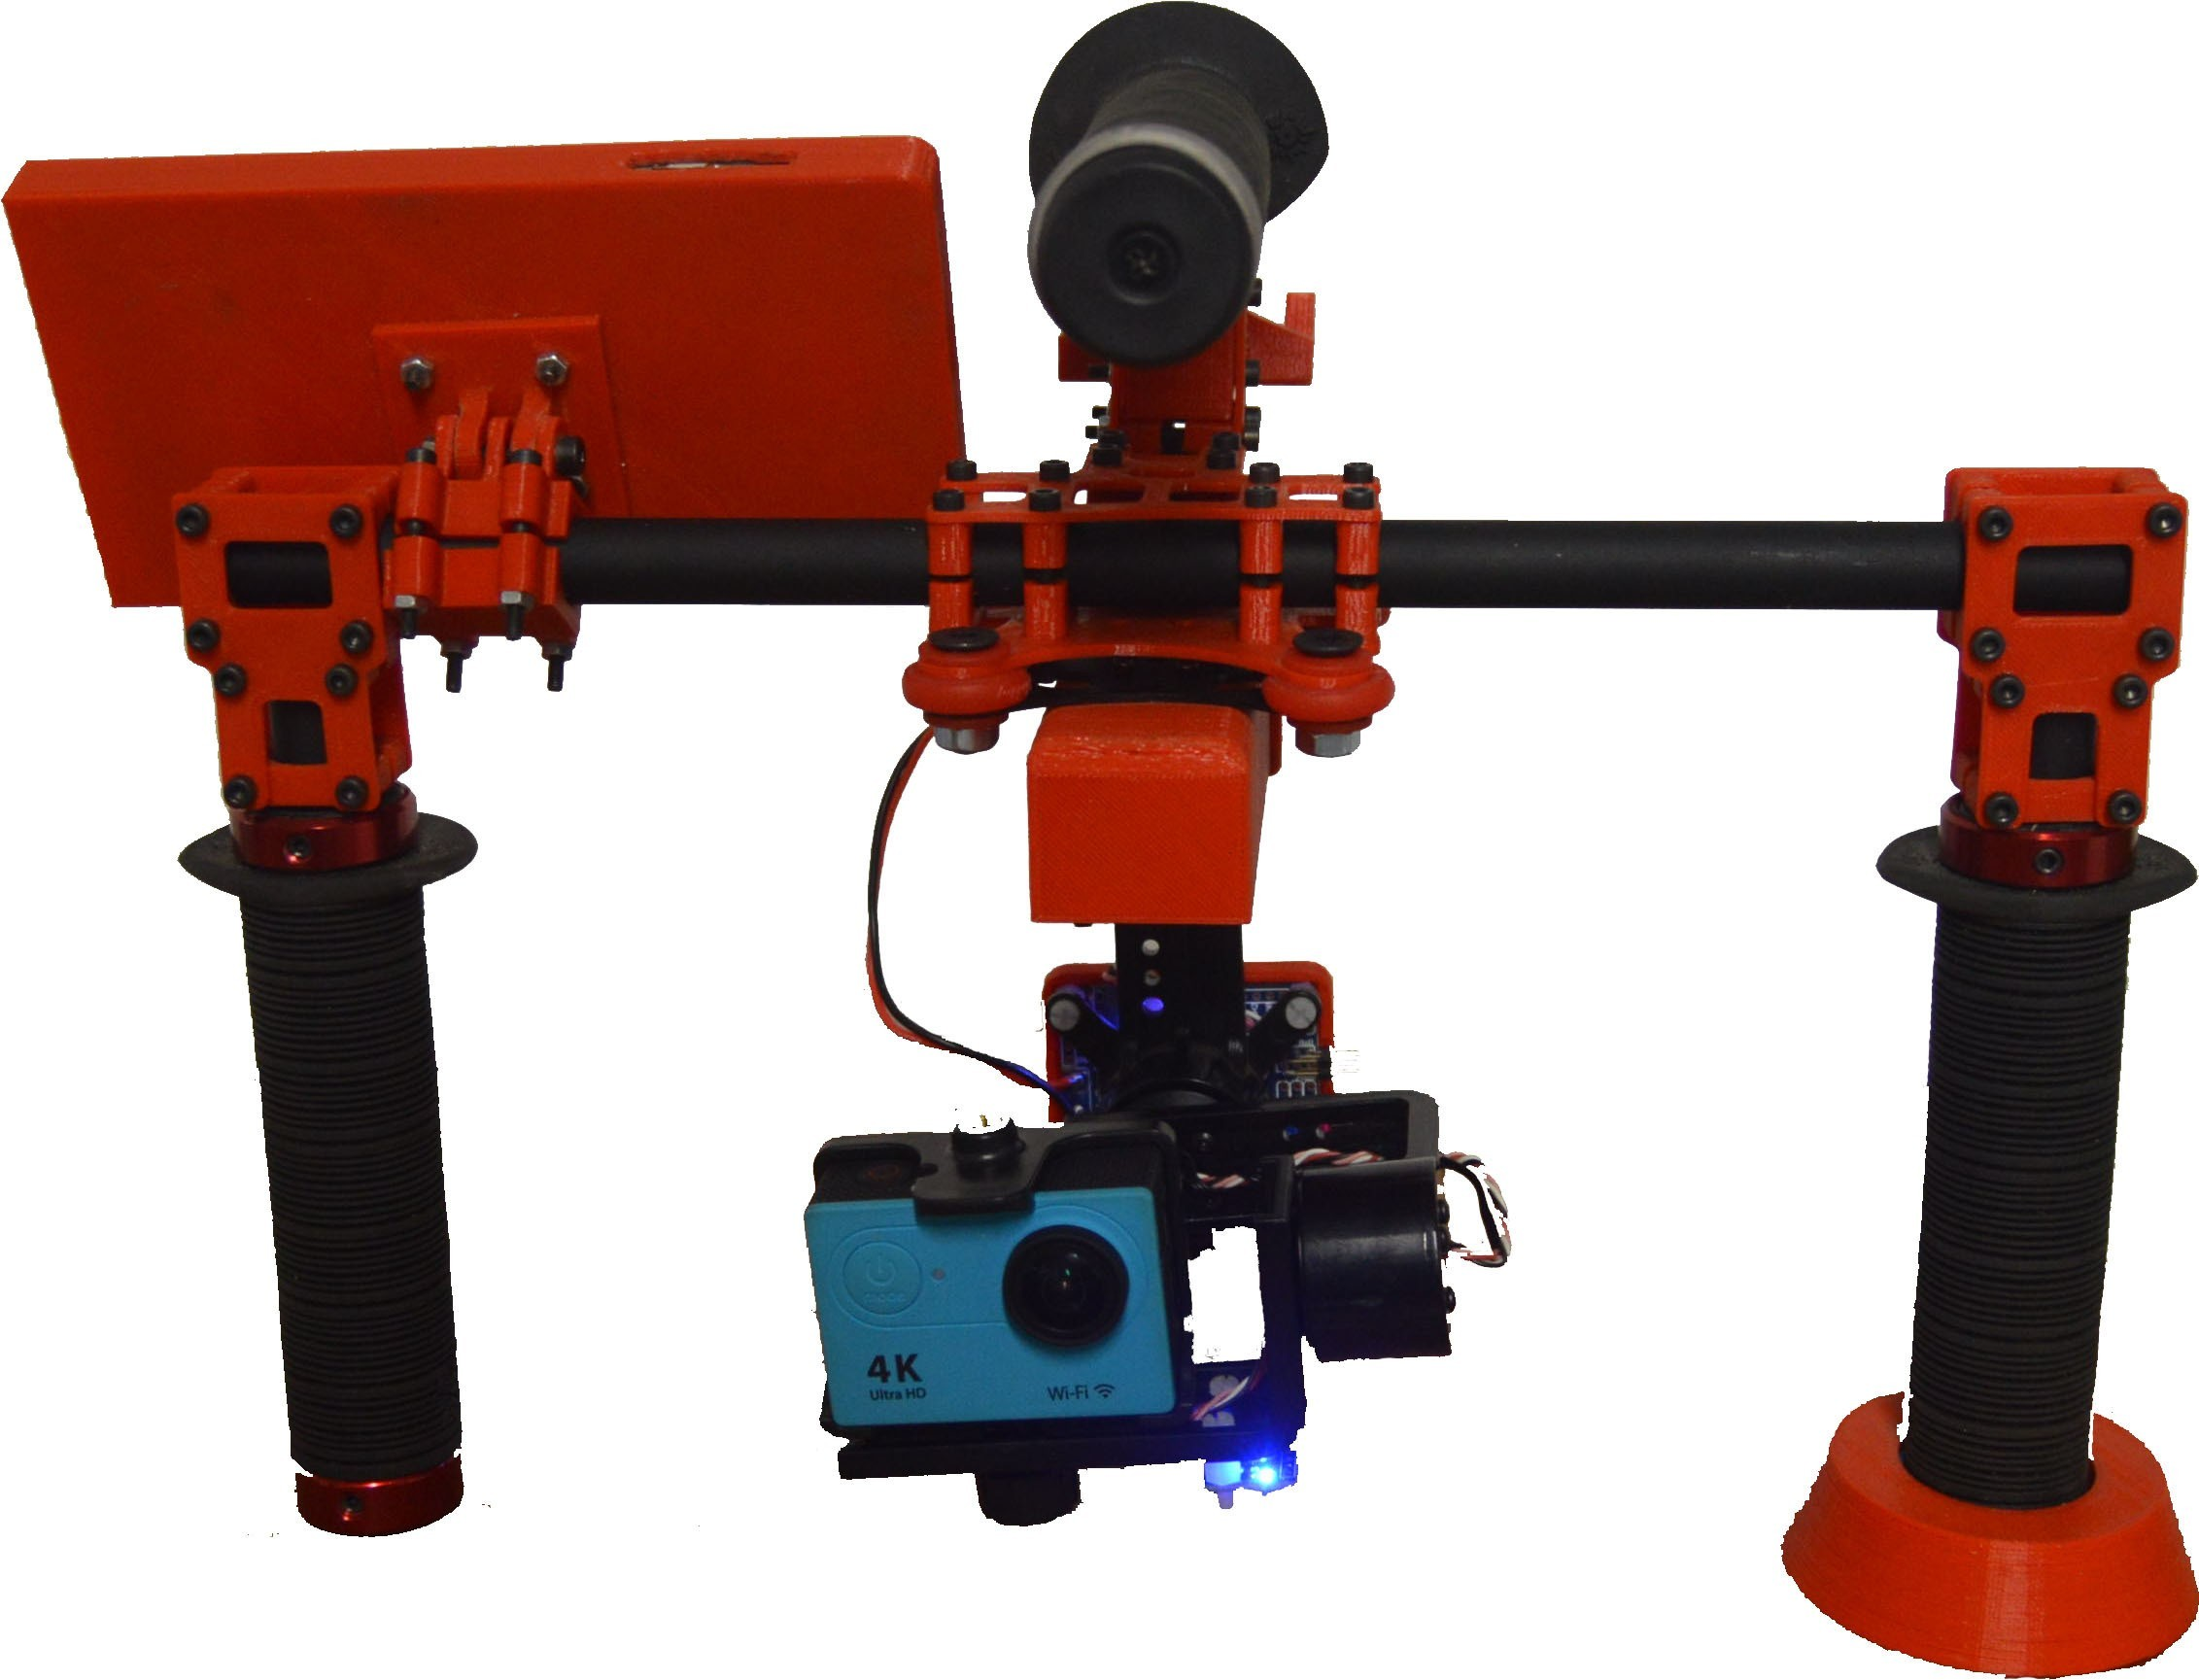 presentacion.jpg Download free STL file Video Stabilizer • Model to 3D print, relieves3d